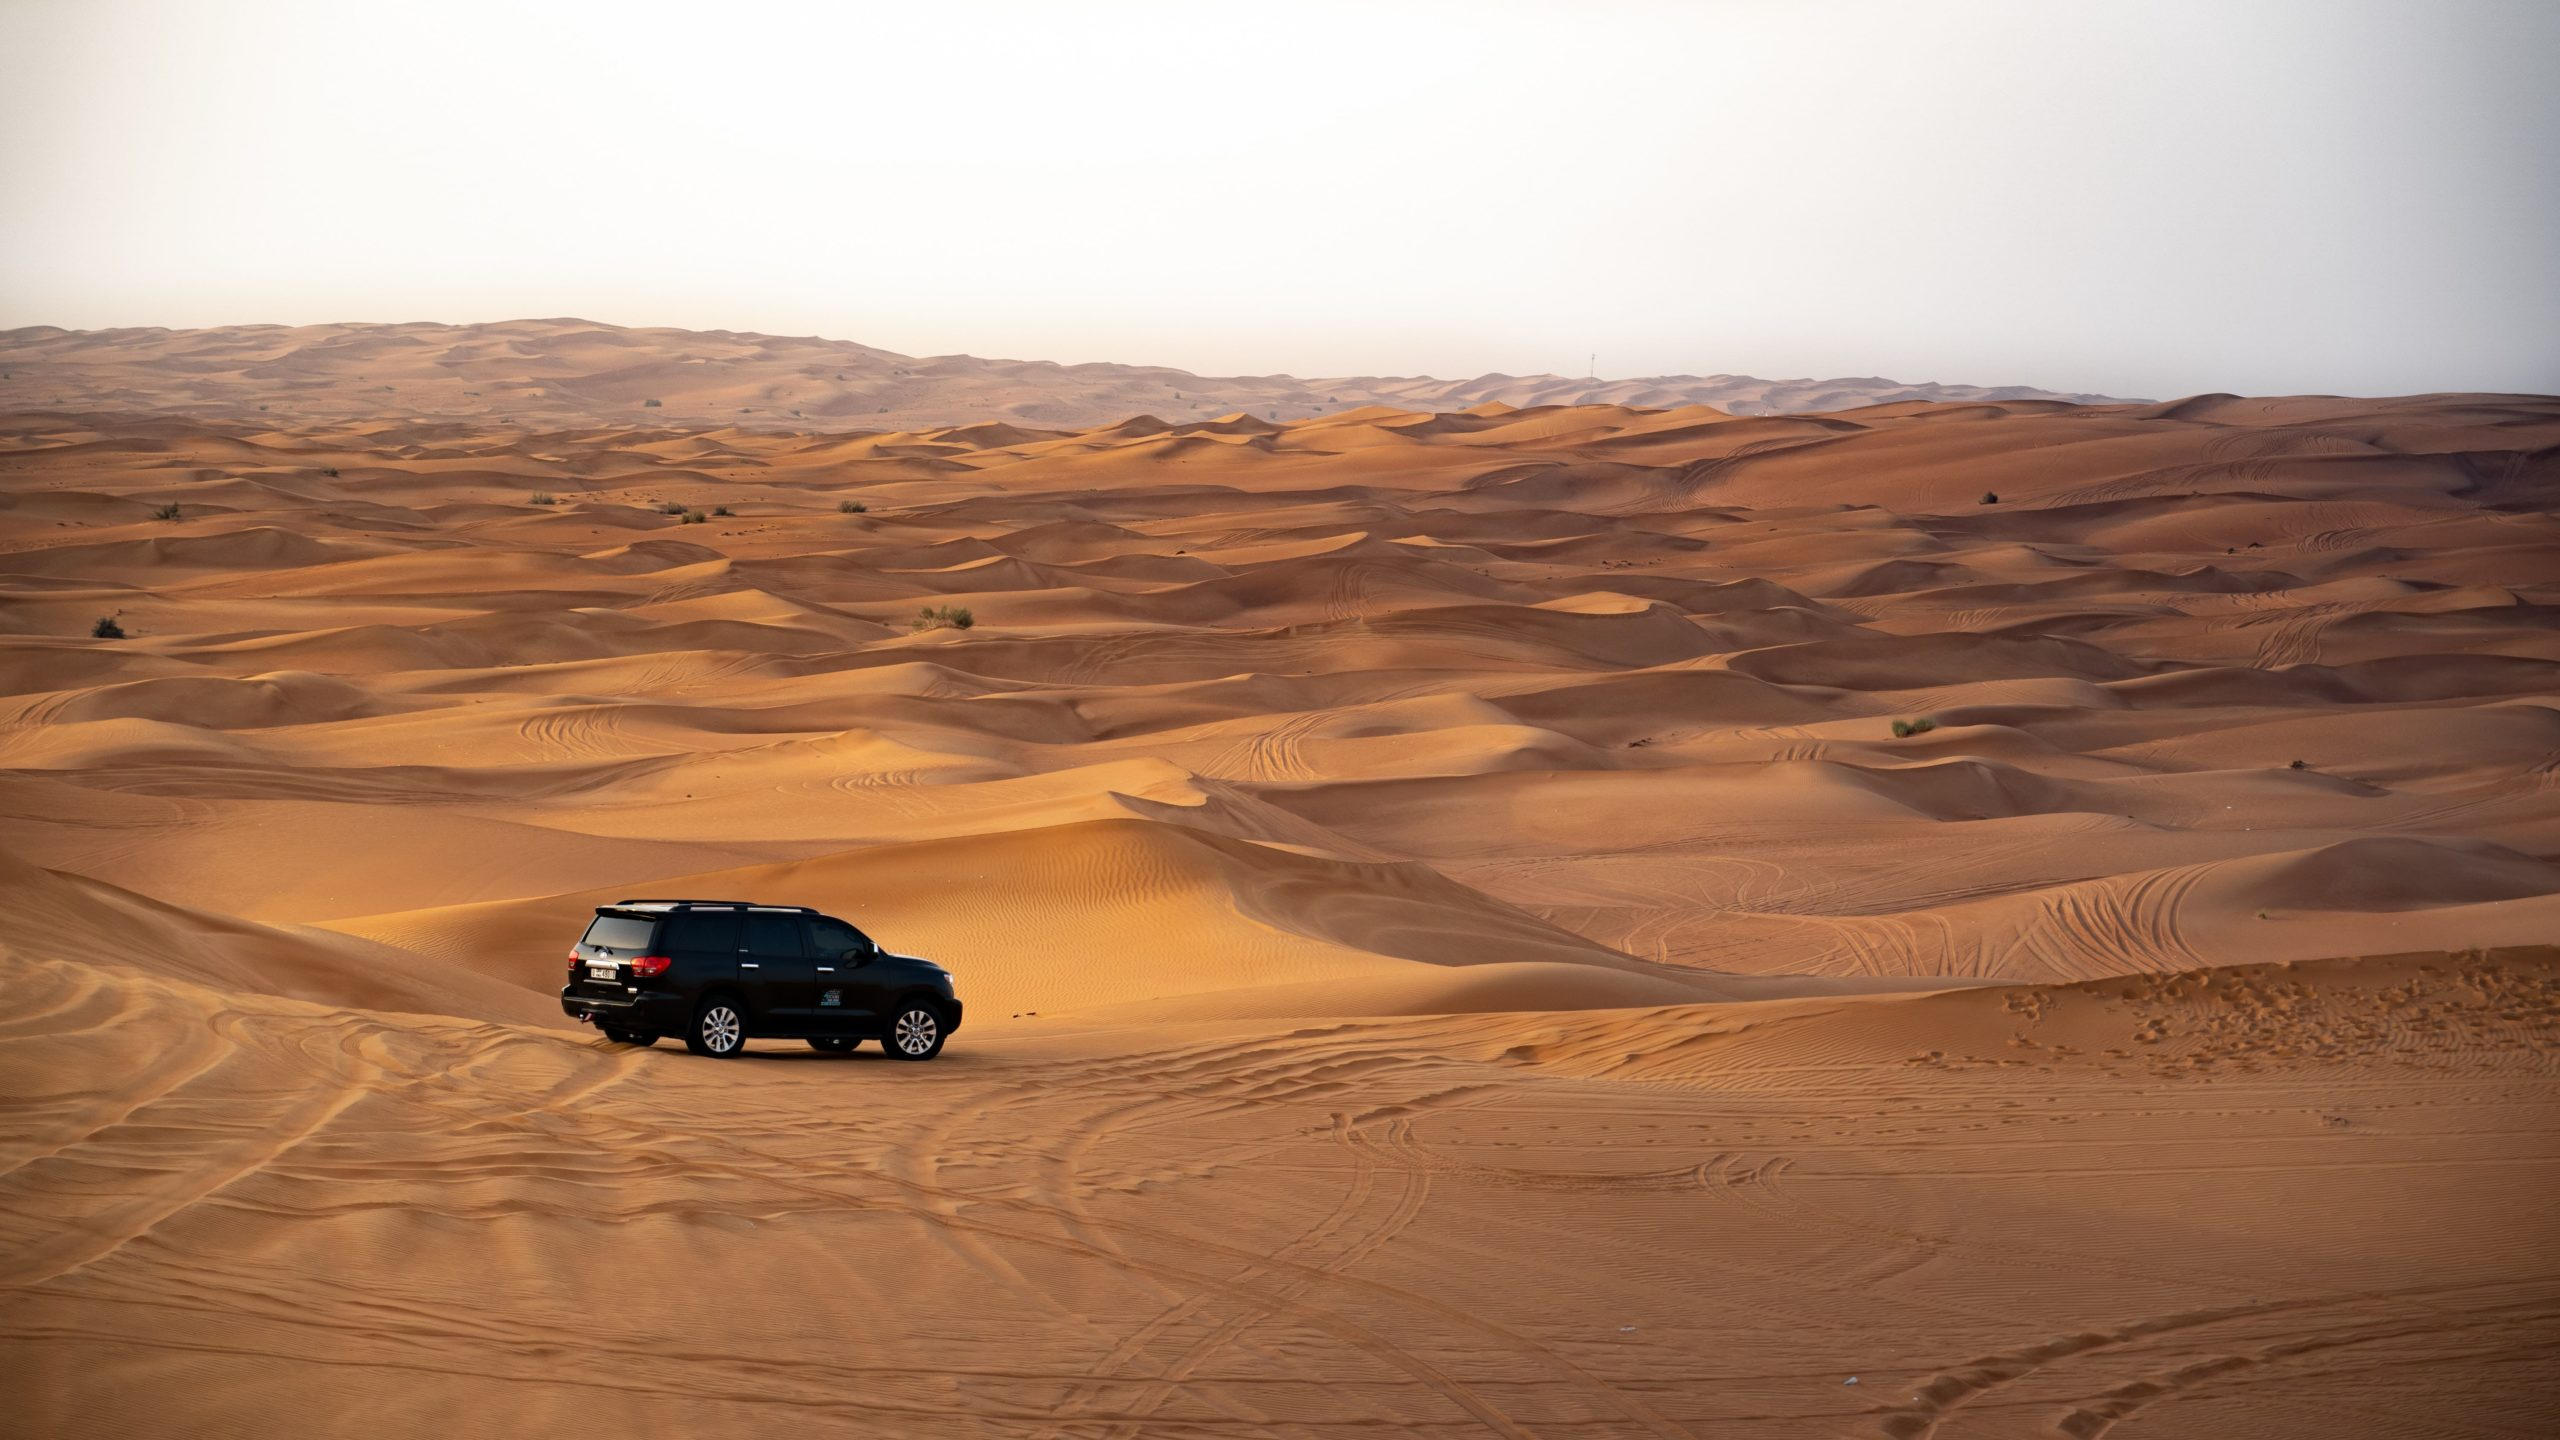 A black toyota on dunes of sand in the desert